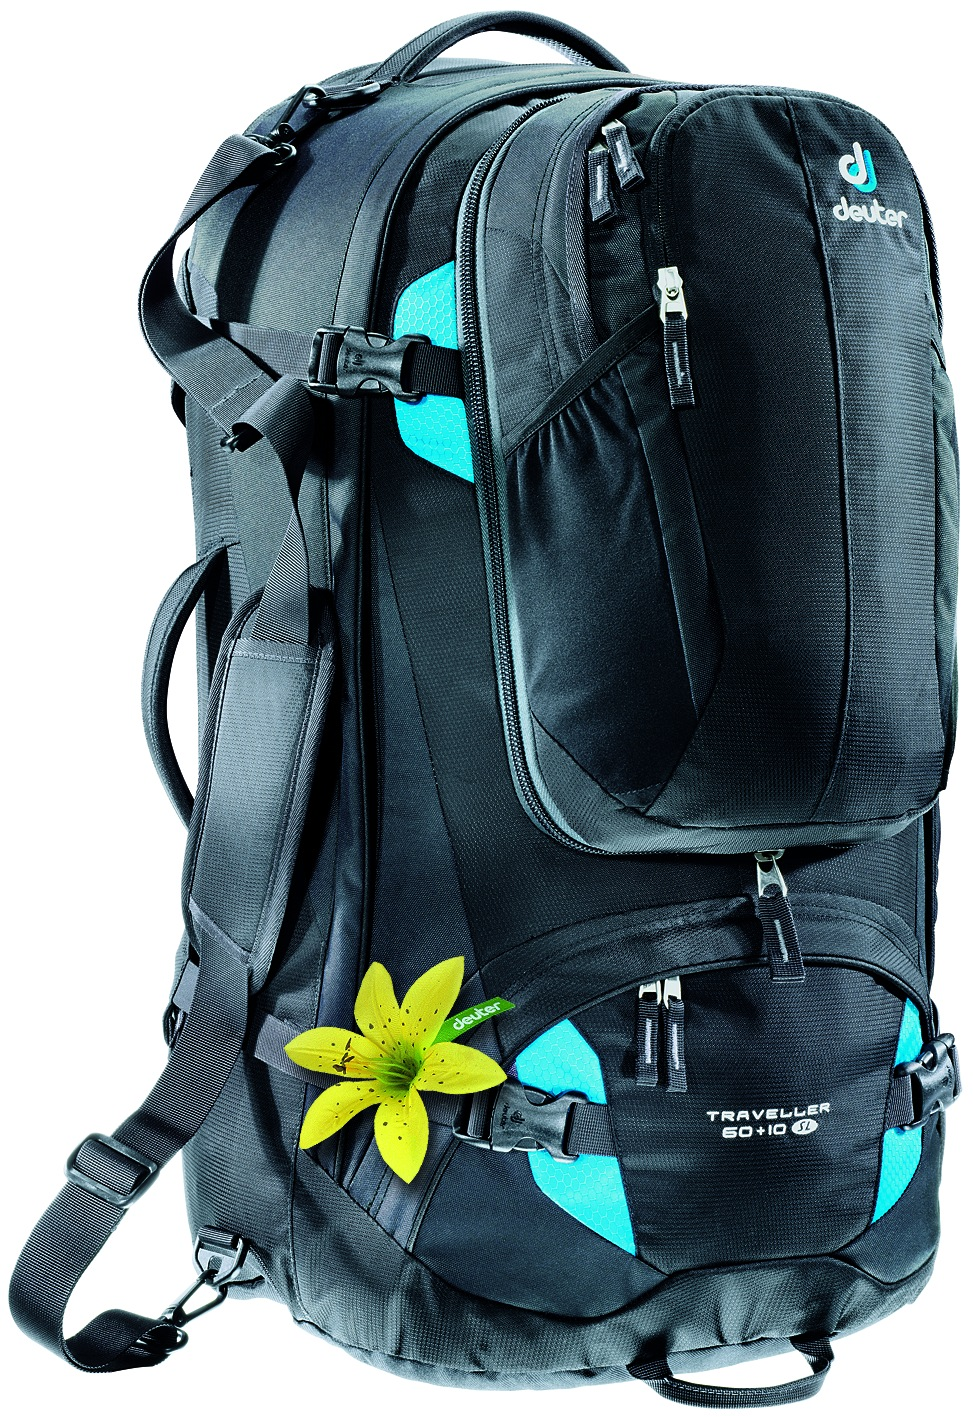 Deuter Traveller 60 + 10 SL black-turquoise-30